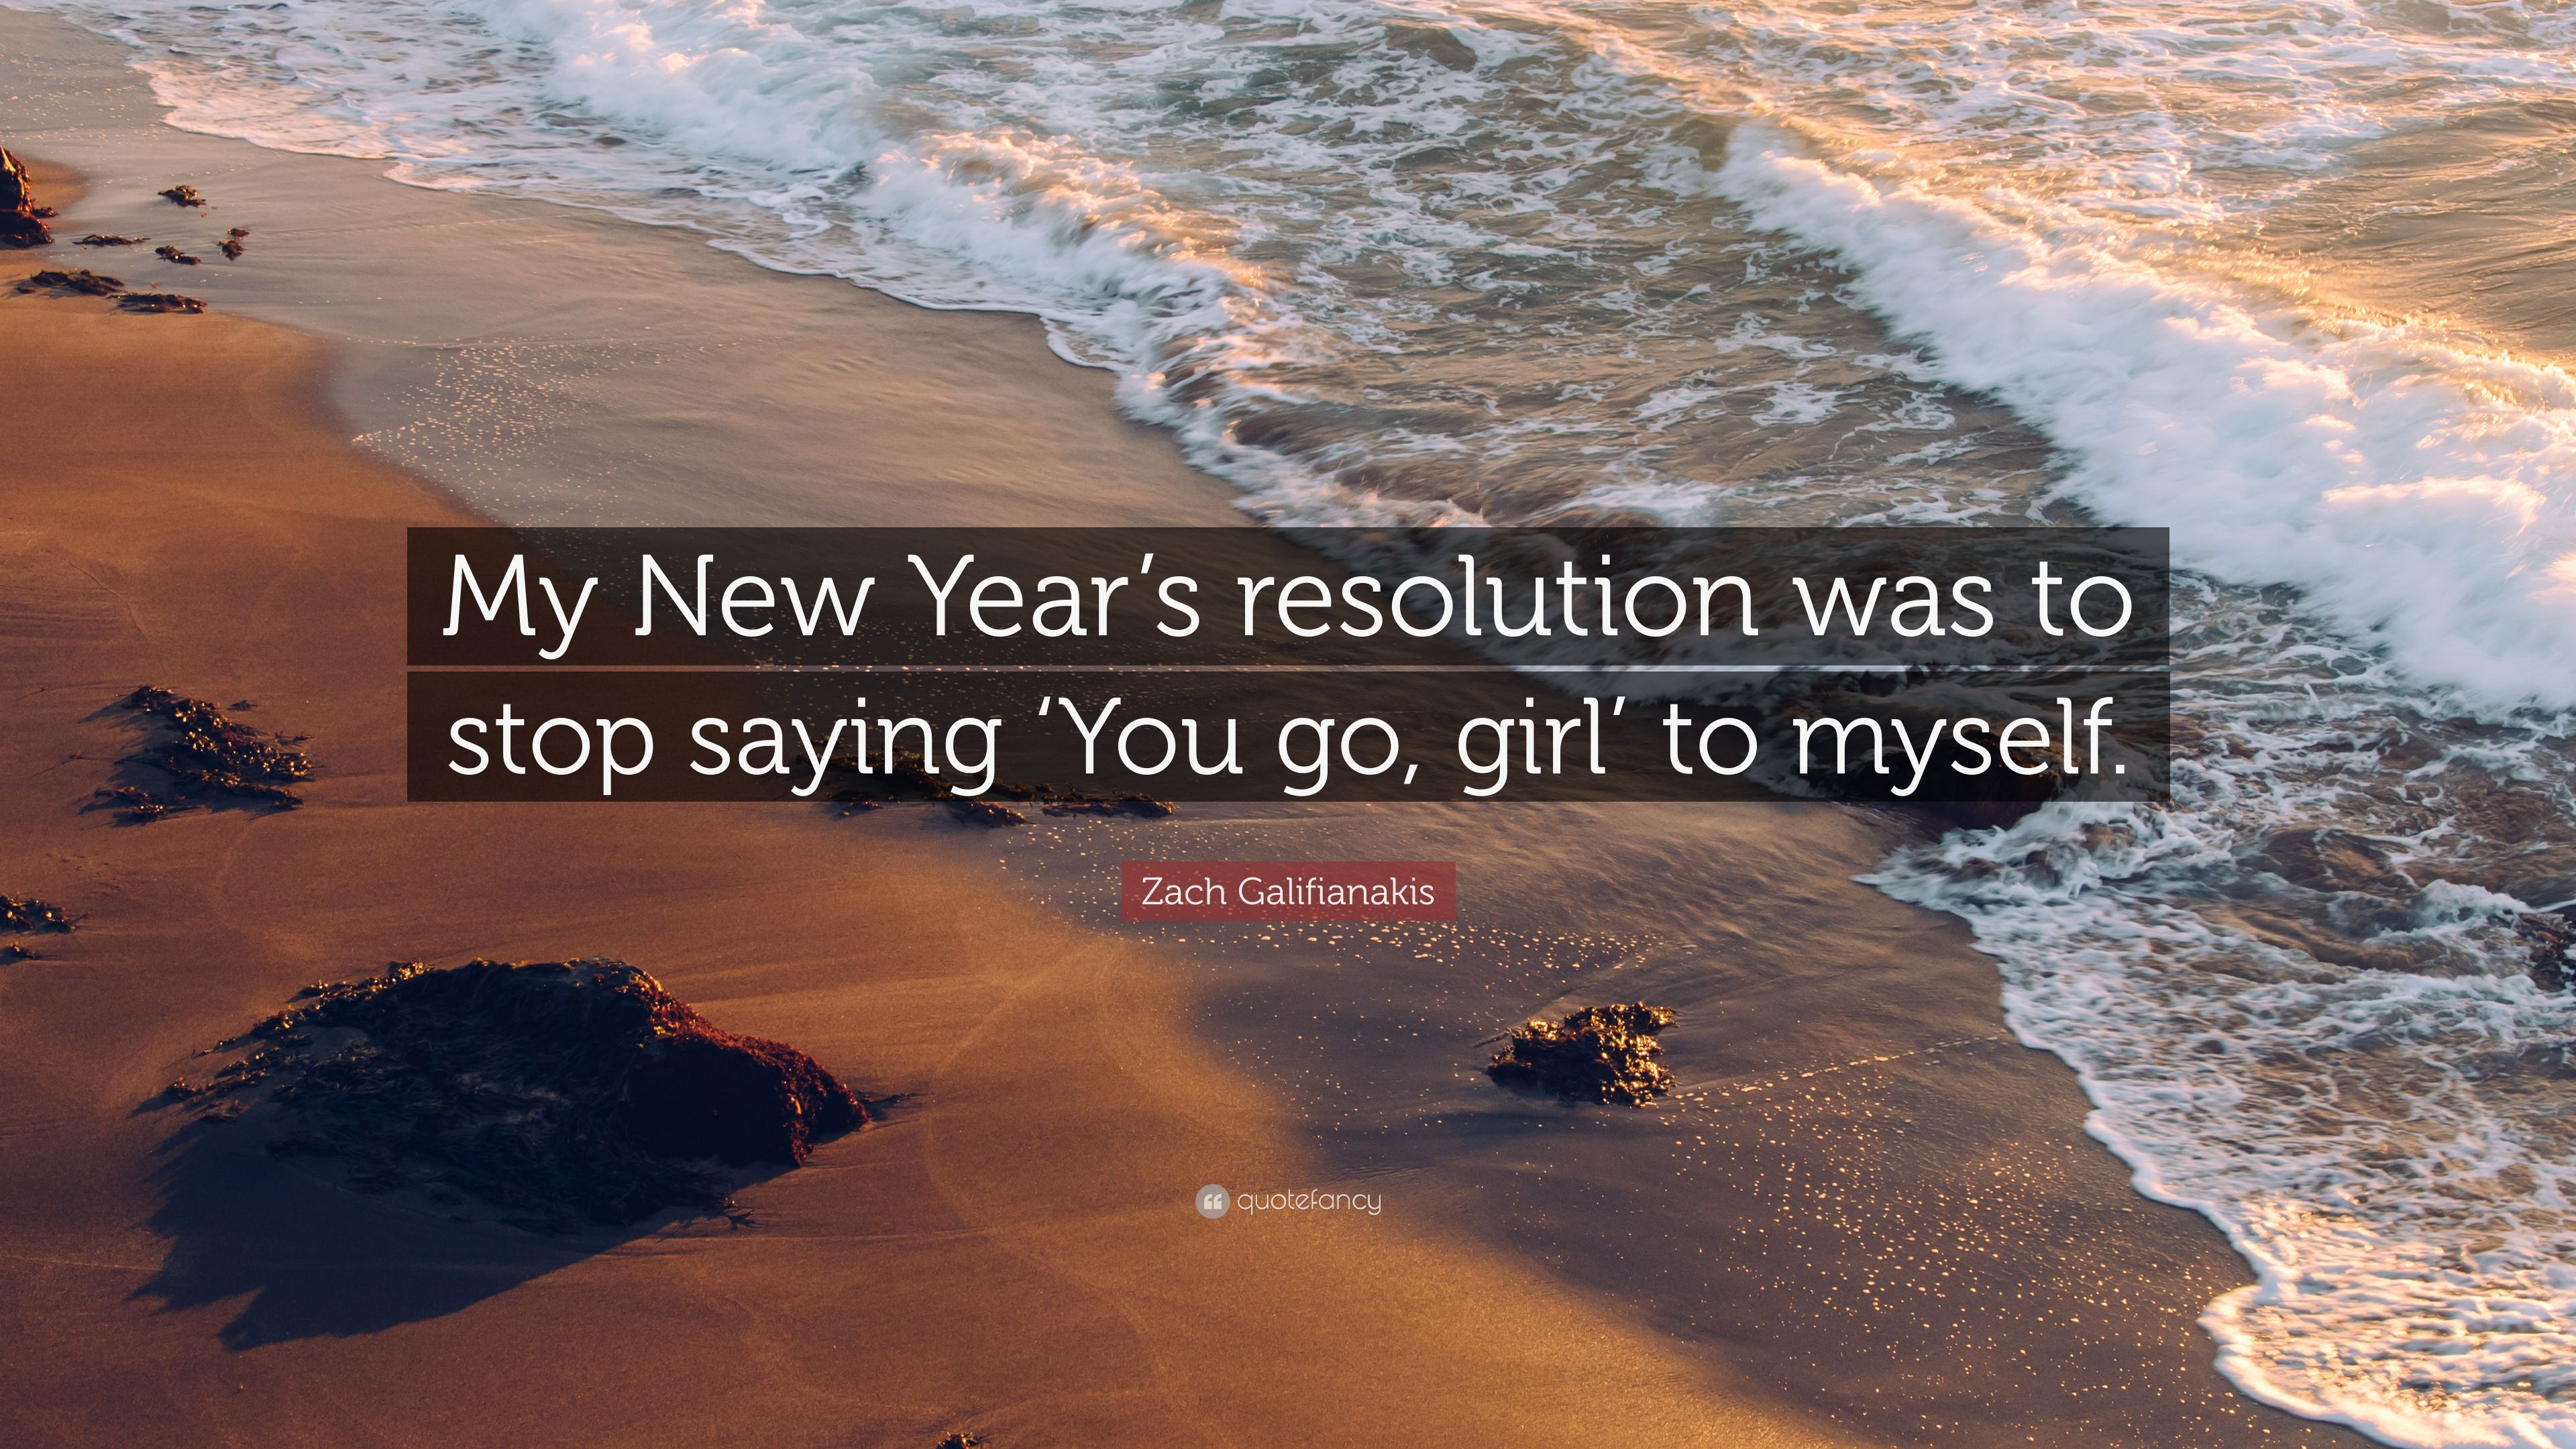 zach galifianakis quote my new years resolution was to stop saying you go